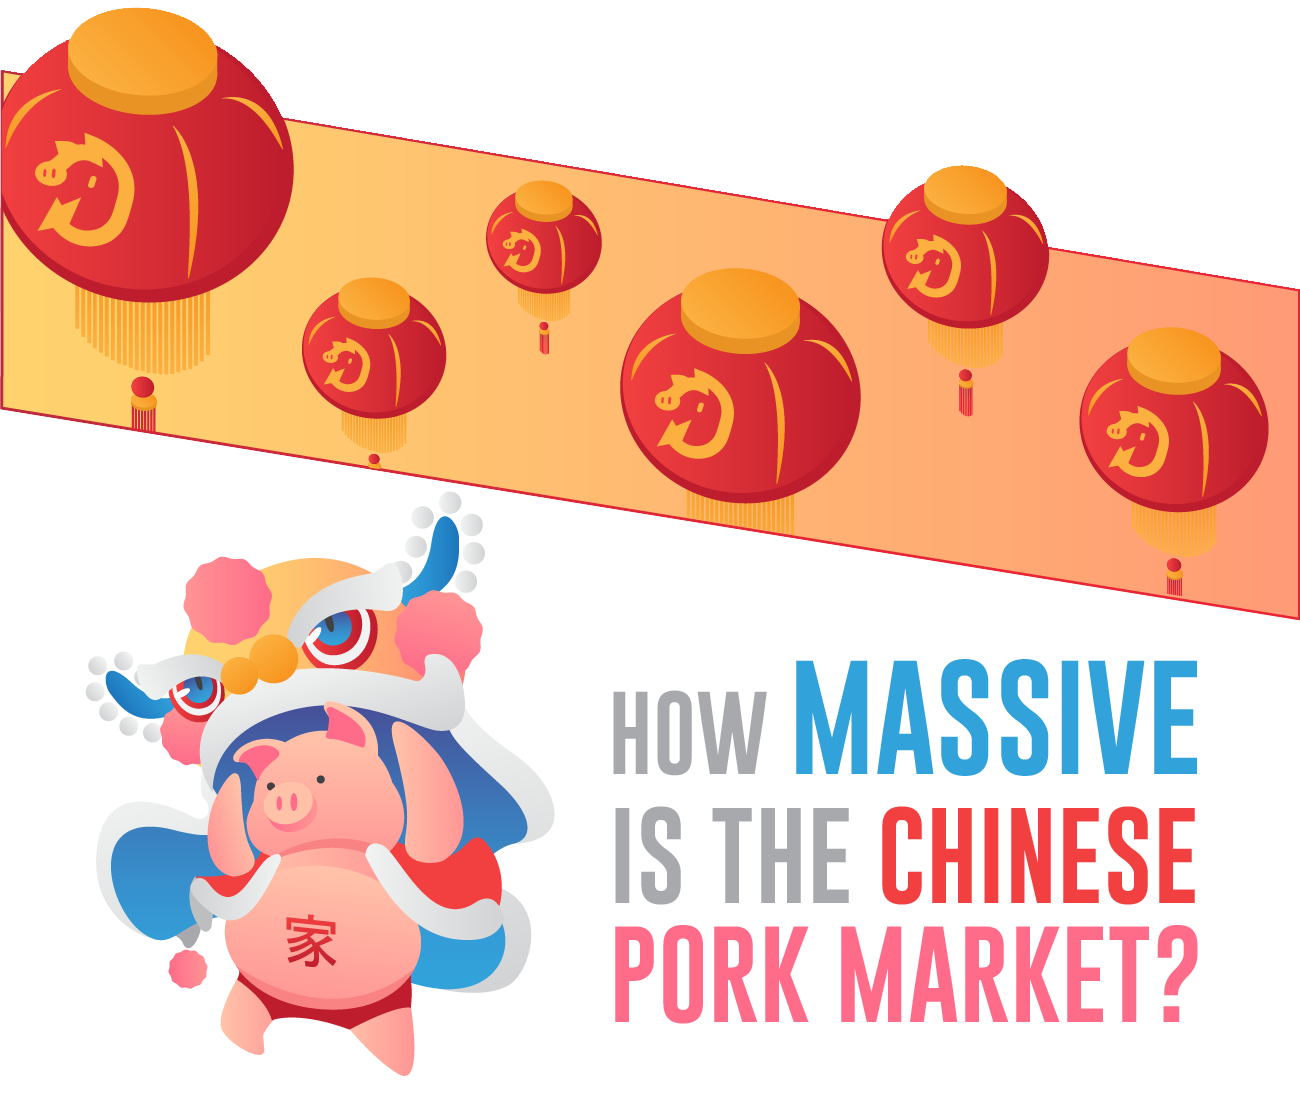 How massive is the chinese pork market.